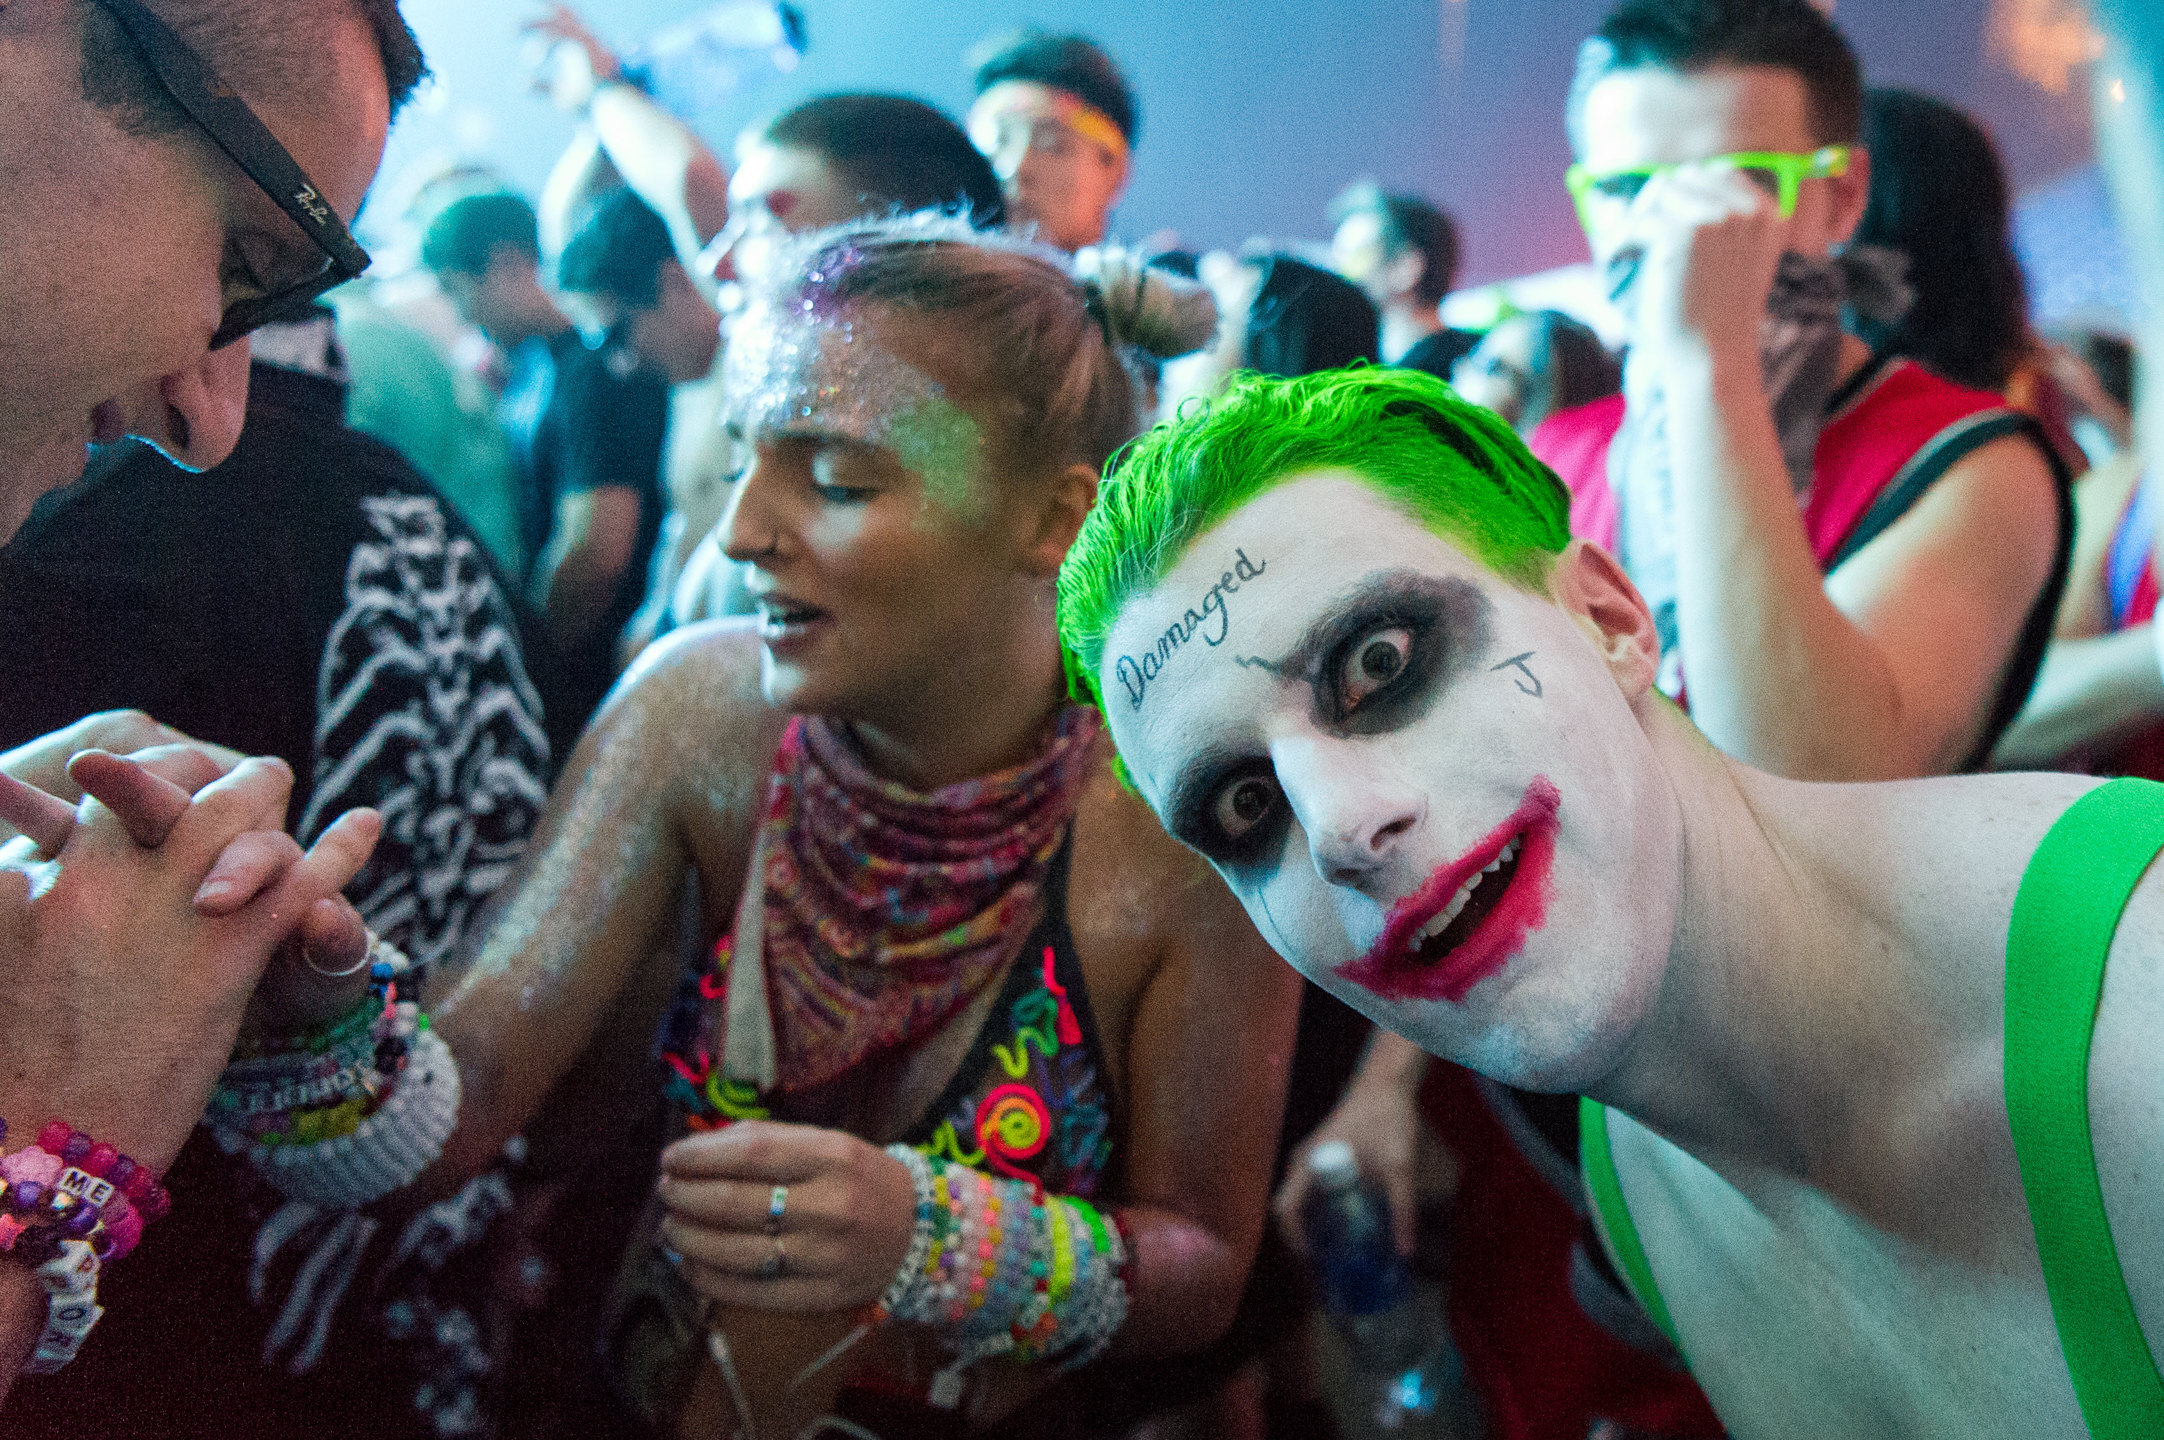 Festival Raver Joker Costume at USC Events FreakNight at the Tacoma Dome 2016